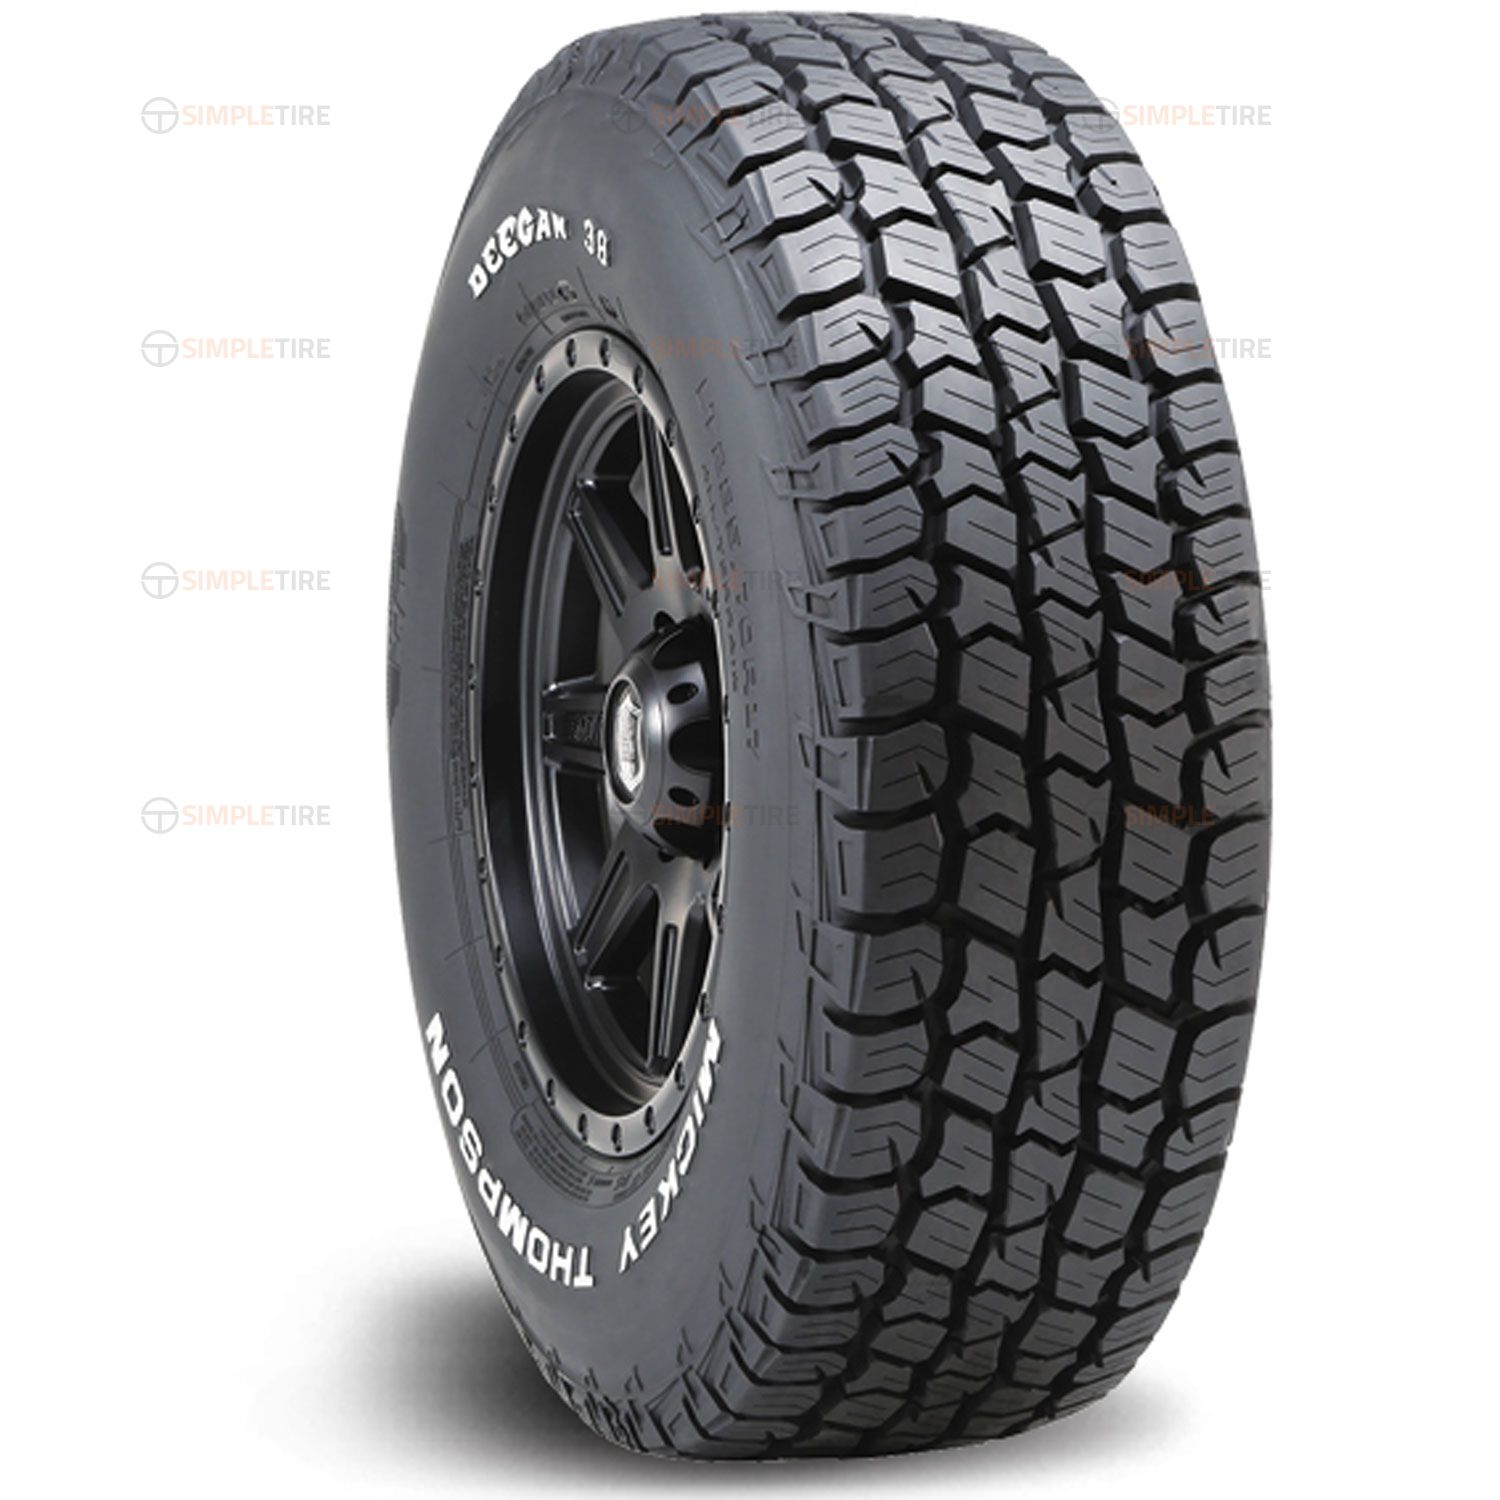 90000029549 LT225/75R16 Deegan 38 A/T Mickey Thompson